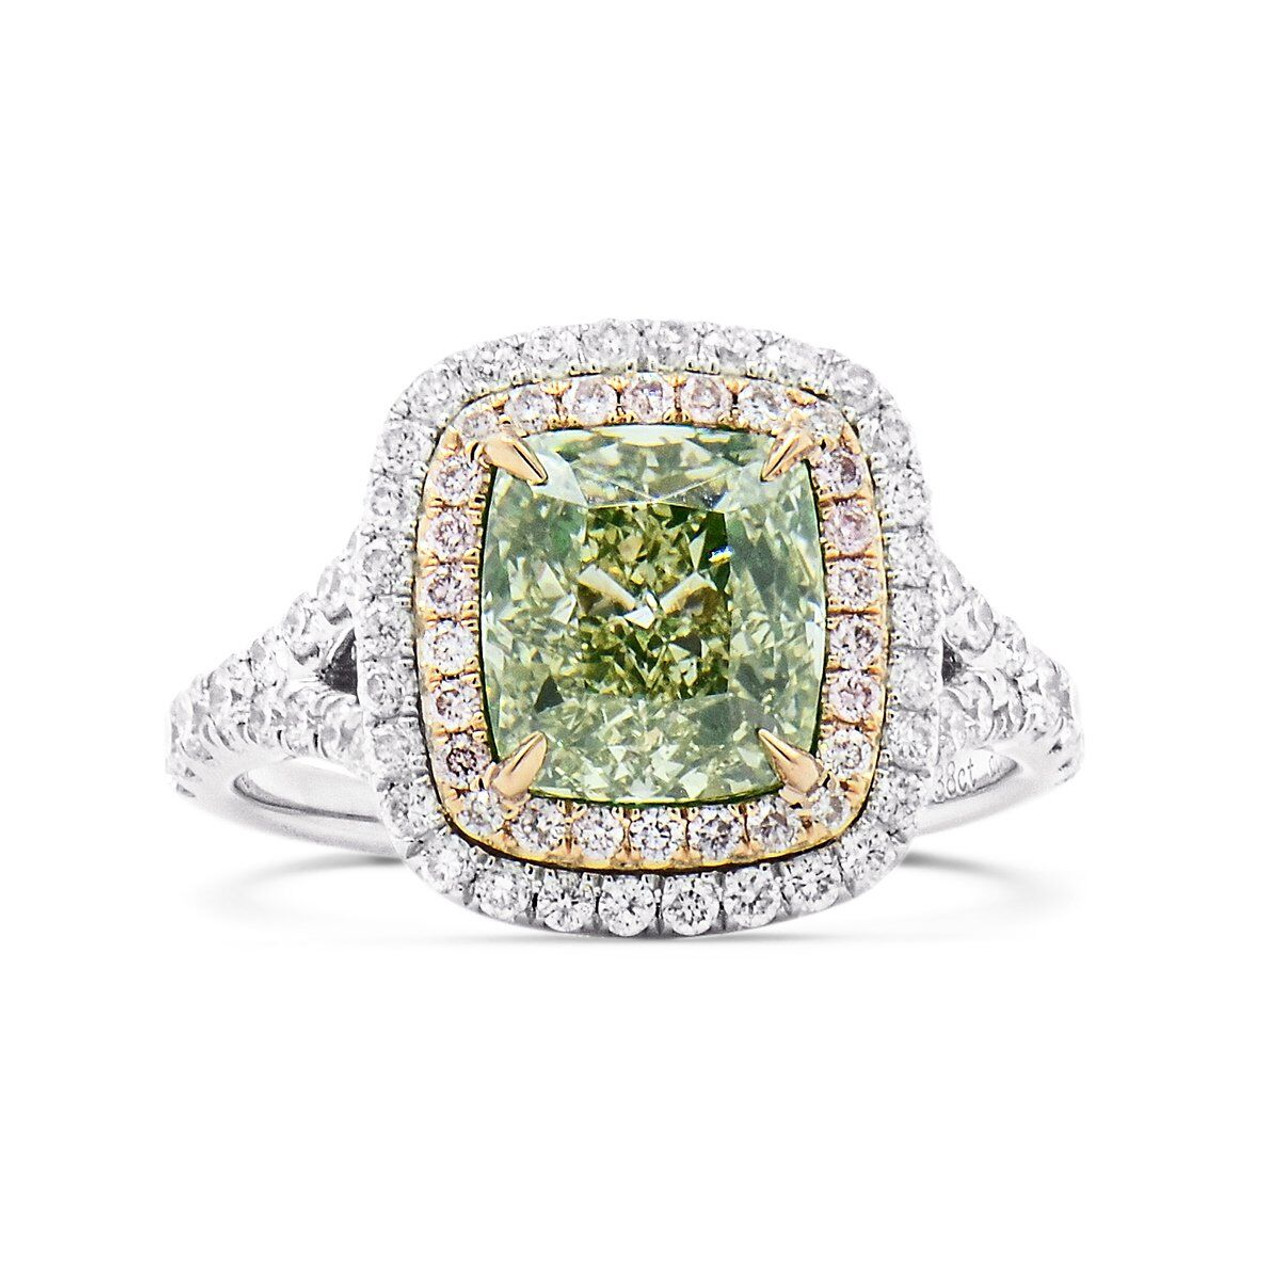 To acquire Diamond green wedding ring picture trends